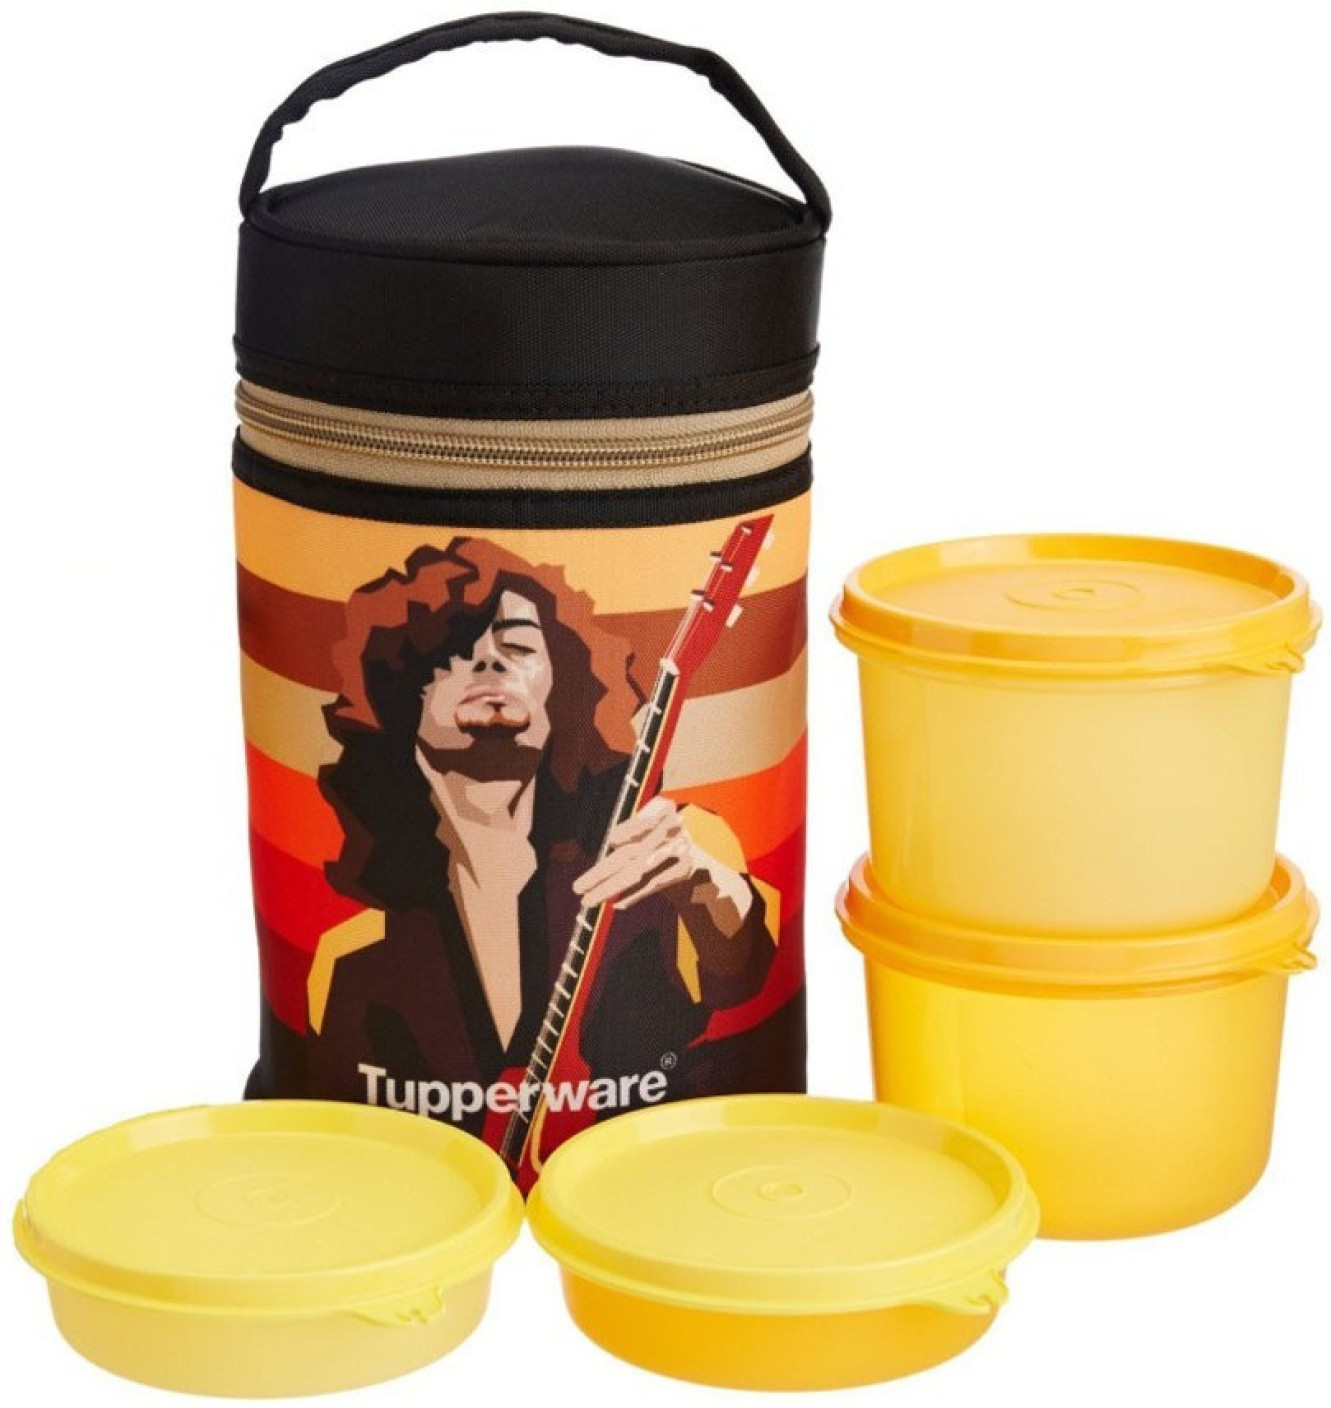 tupperware rocker 4 containers lunch box. Black Bedroom Furniture Sets. Home Design Ideas